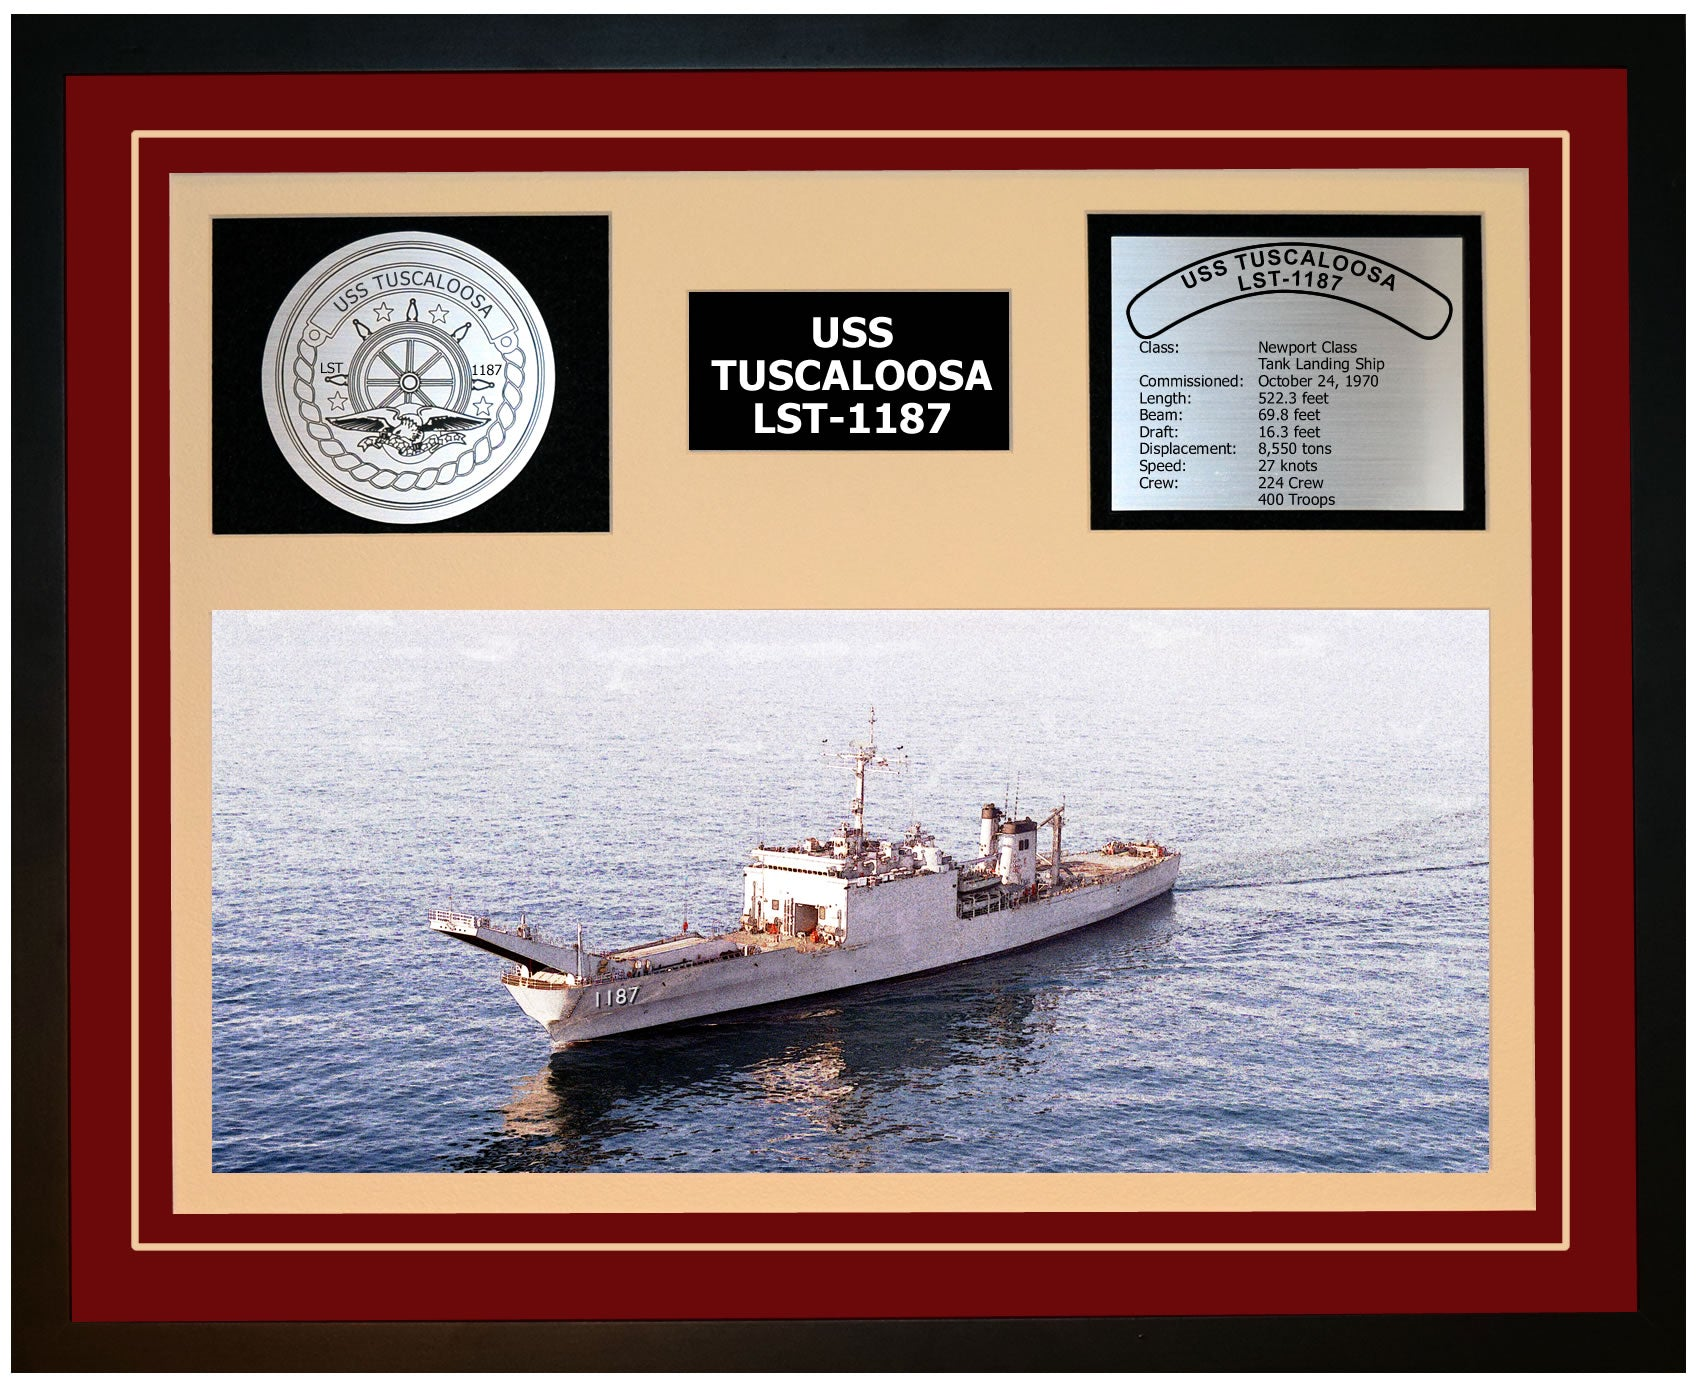 USS TUSCALOOSA LST-1187 Framed Navy Ship Display Burgundy